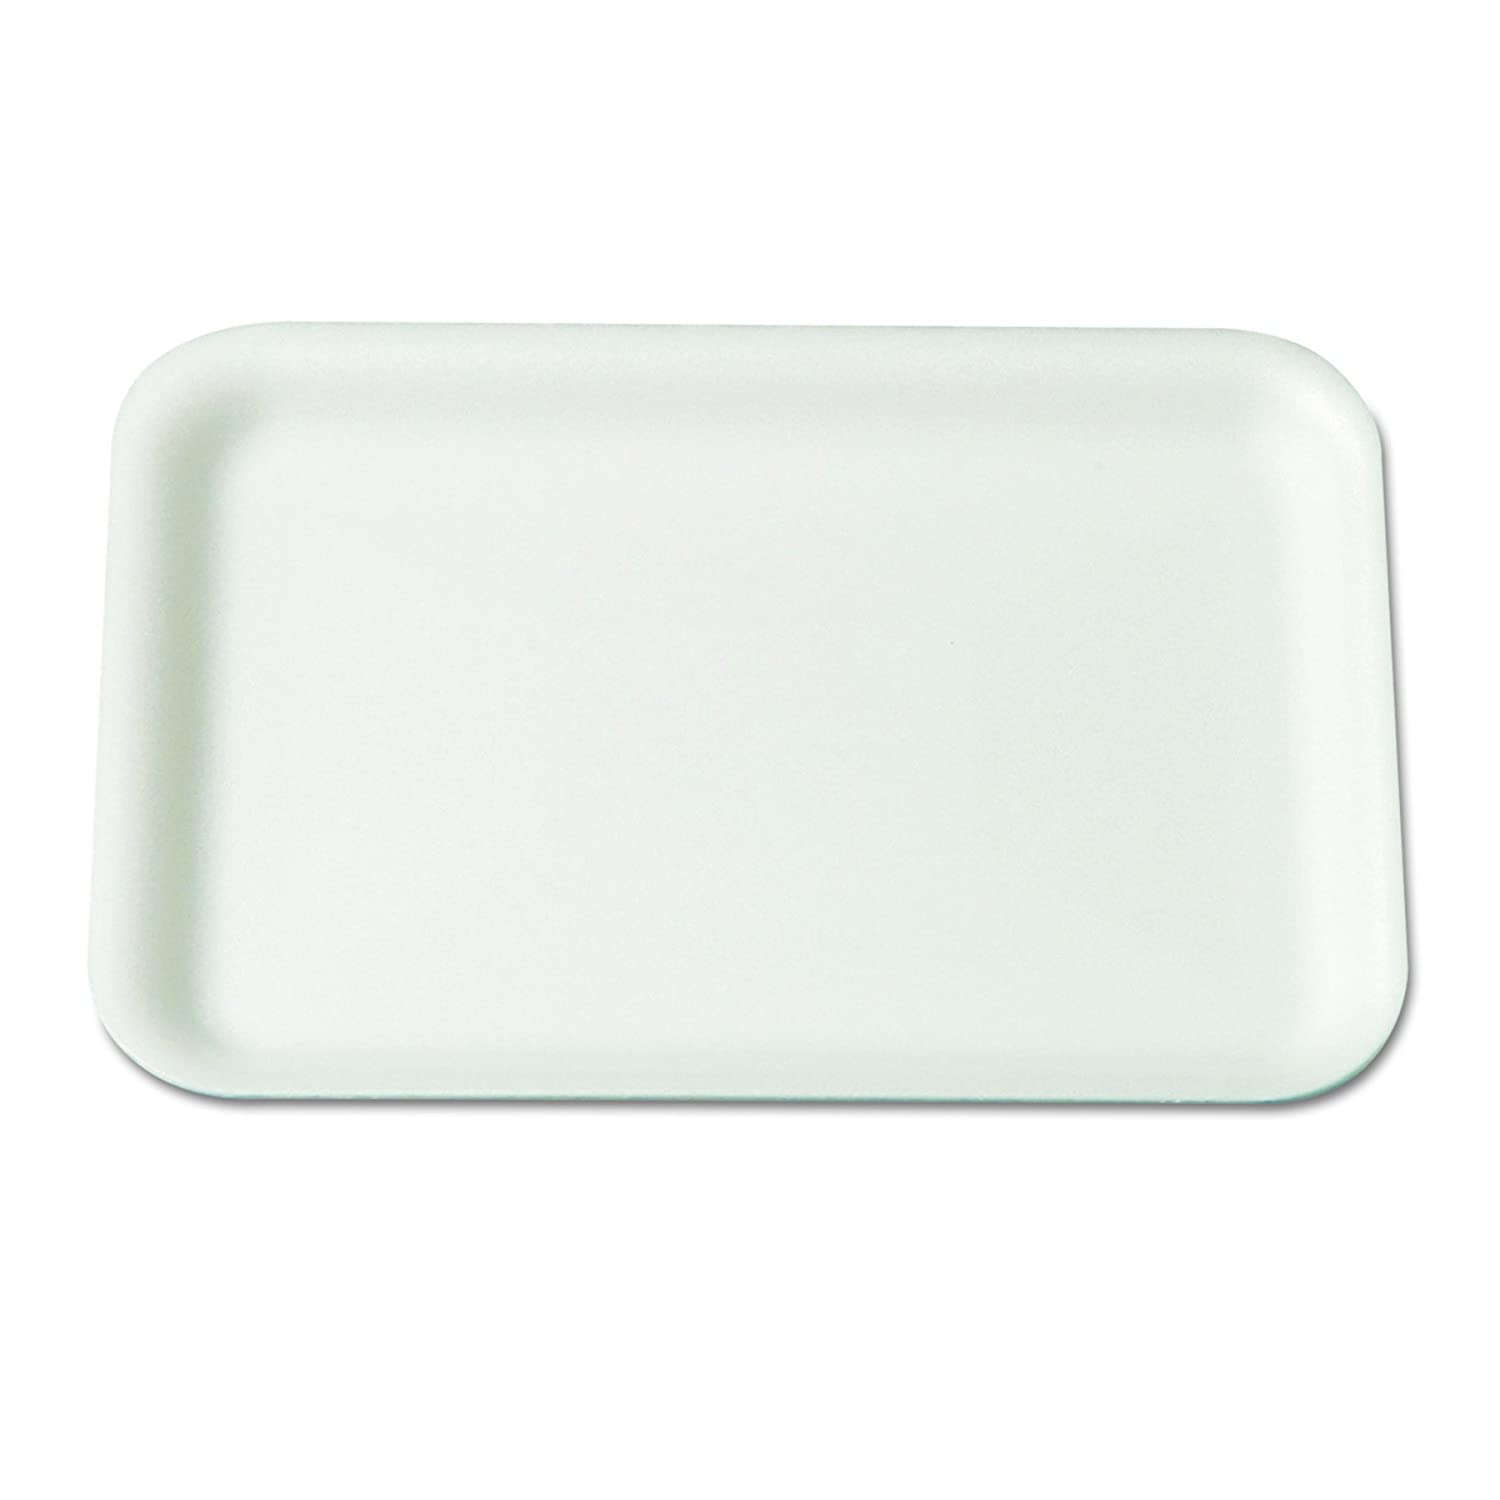 Genpak 2SWH 8.25-Inch Length by 5.75-Inch Width by 0.5-Inch Height White Color Foam Meat Standard Supermarket Food Tray 125-Pack (Case of 4)